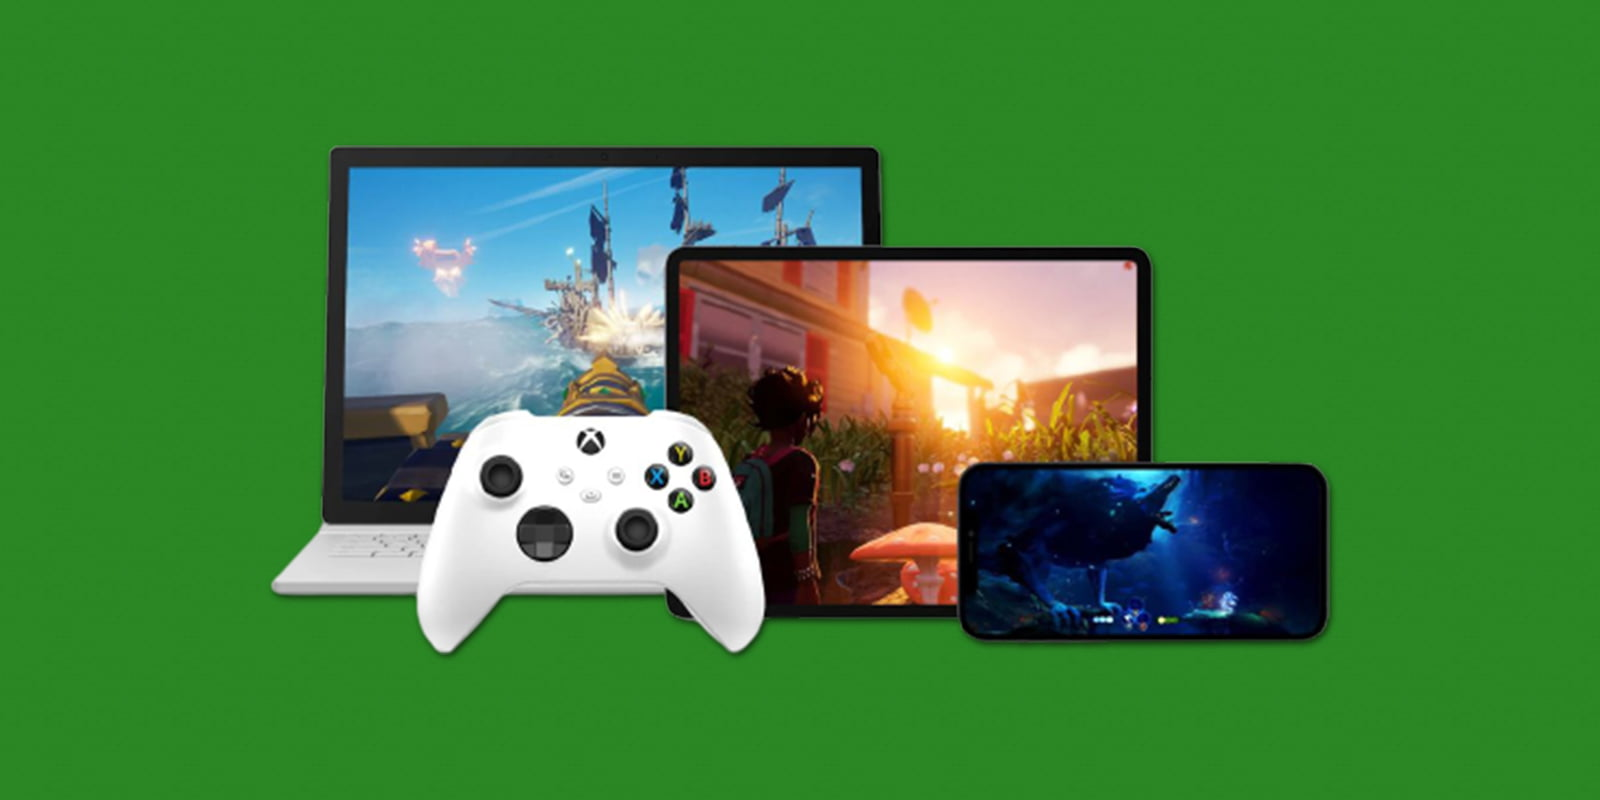 Microsoft rolls out xCloud gaming service to iOS, Macs, and PCs